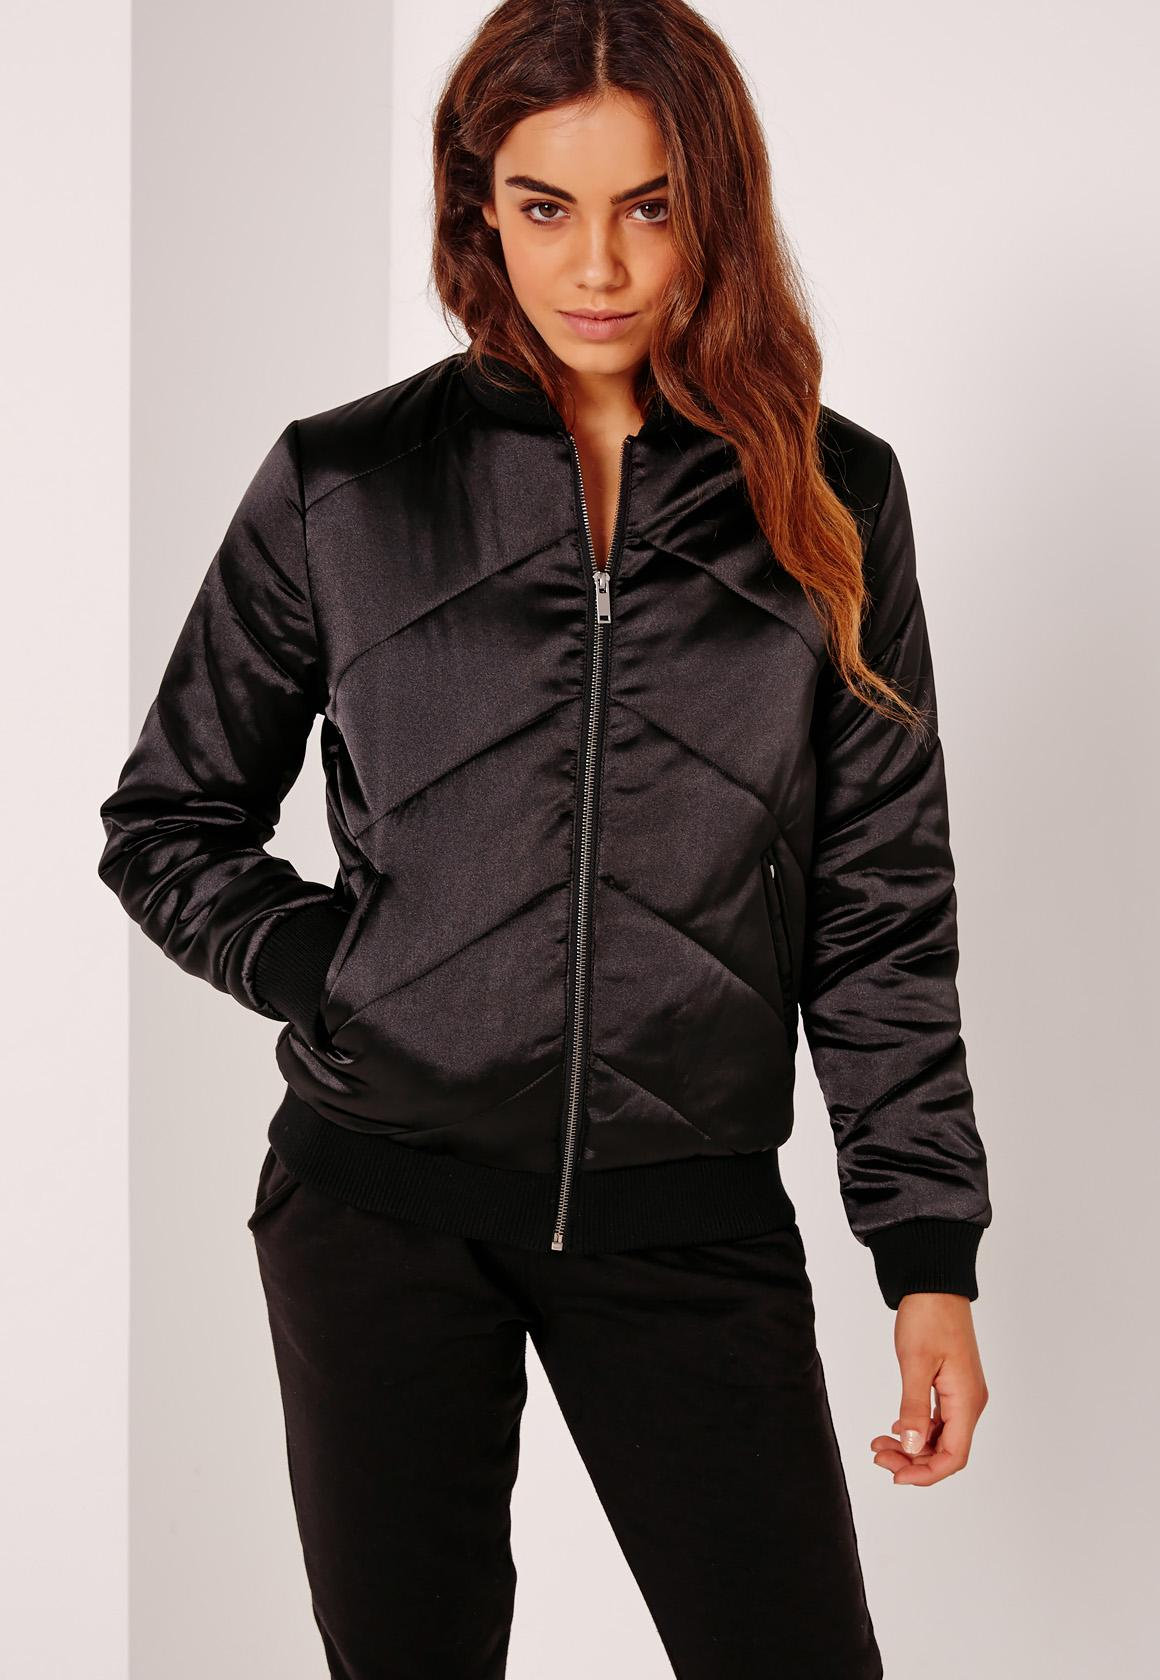 Satin Quilted Bomber Jacket Black - Missguided